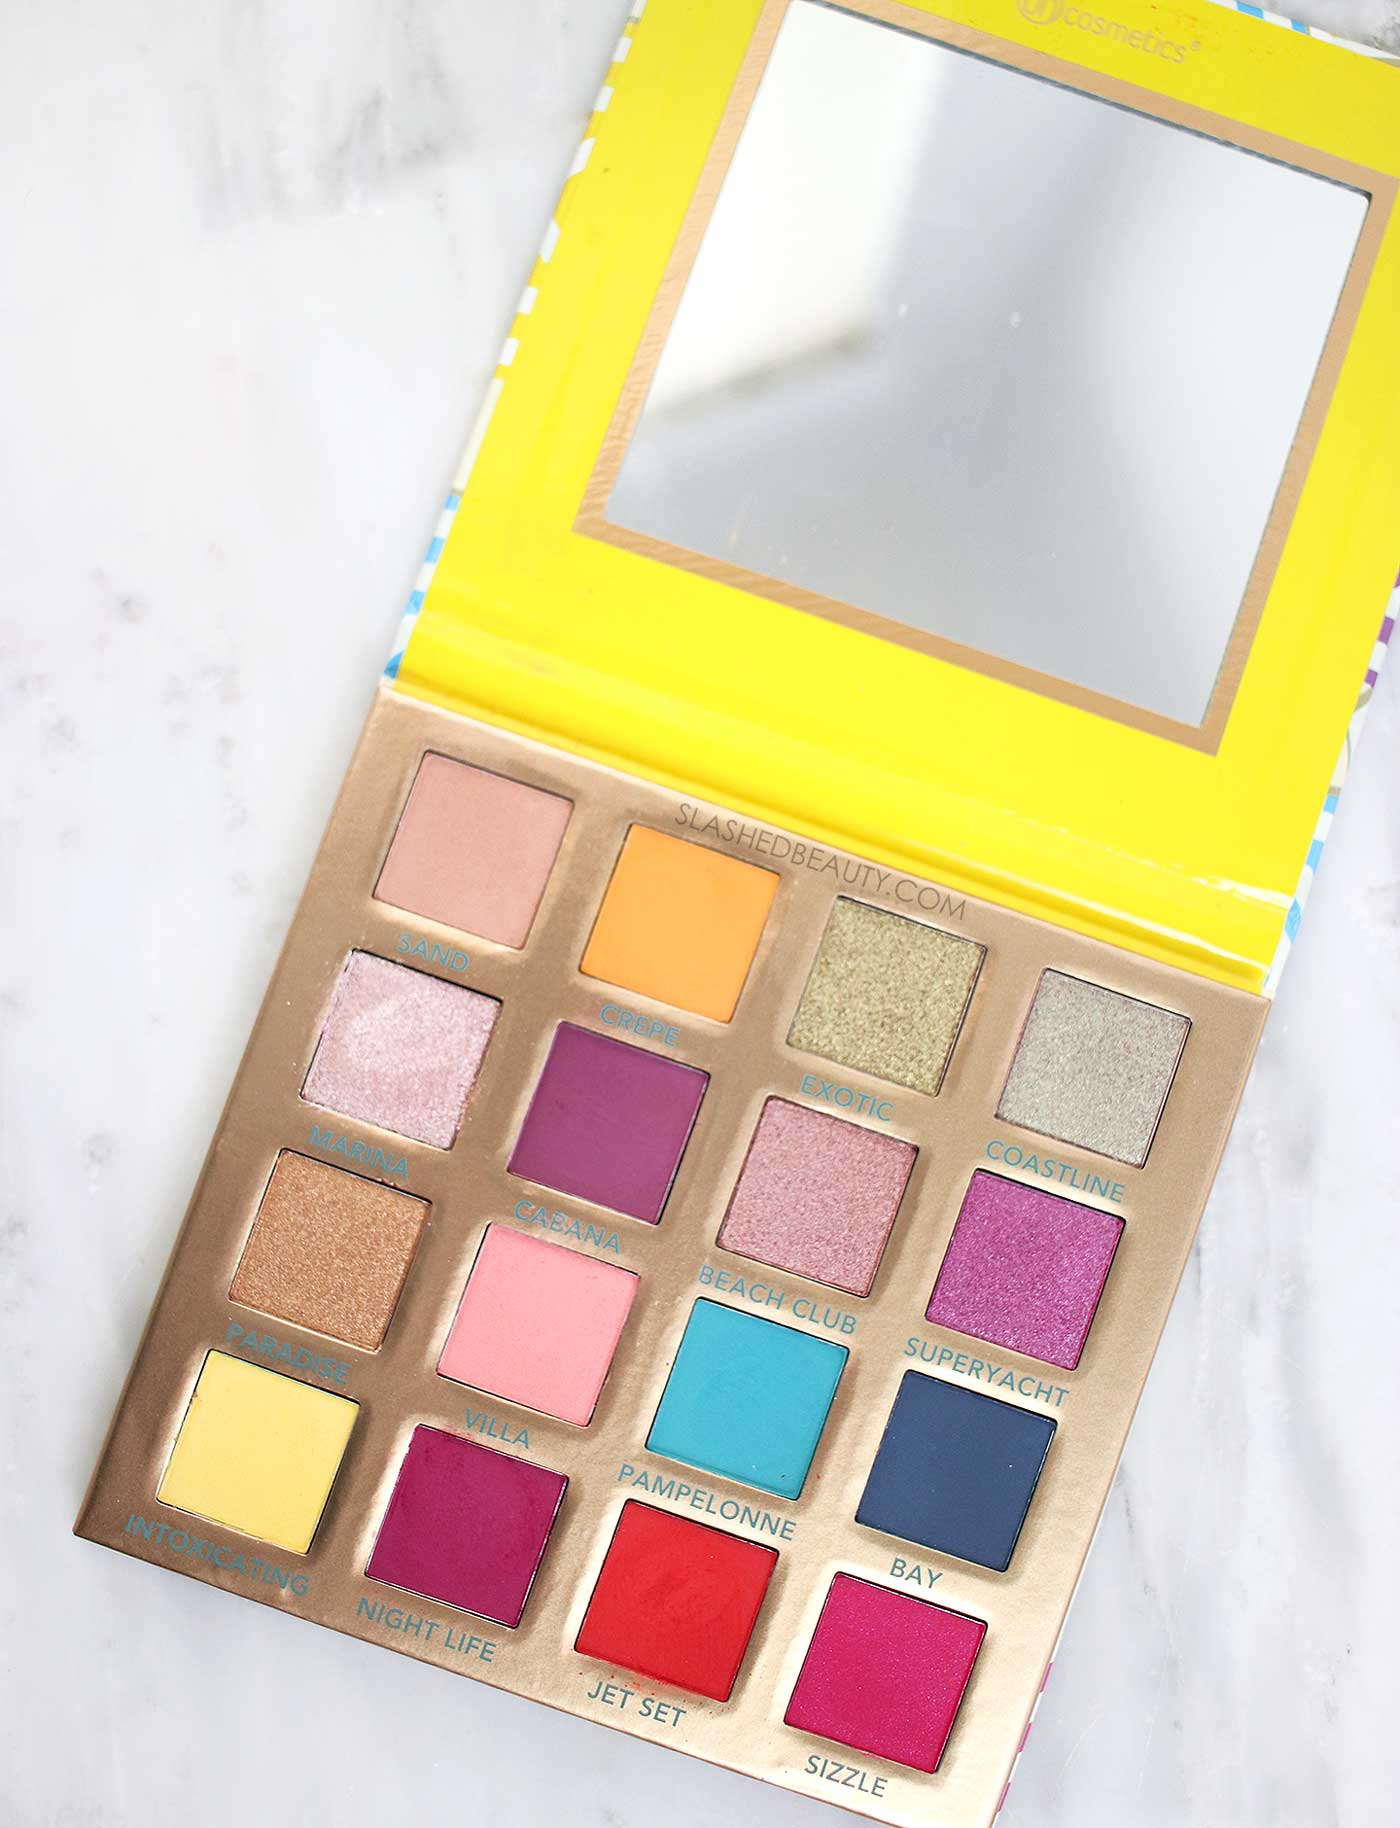 BH Cosmetics Summer in St. Tropez Palette Swatches, Review & Eye Look | Slashed Beauty